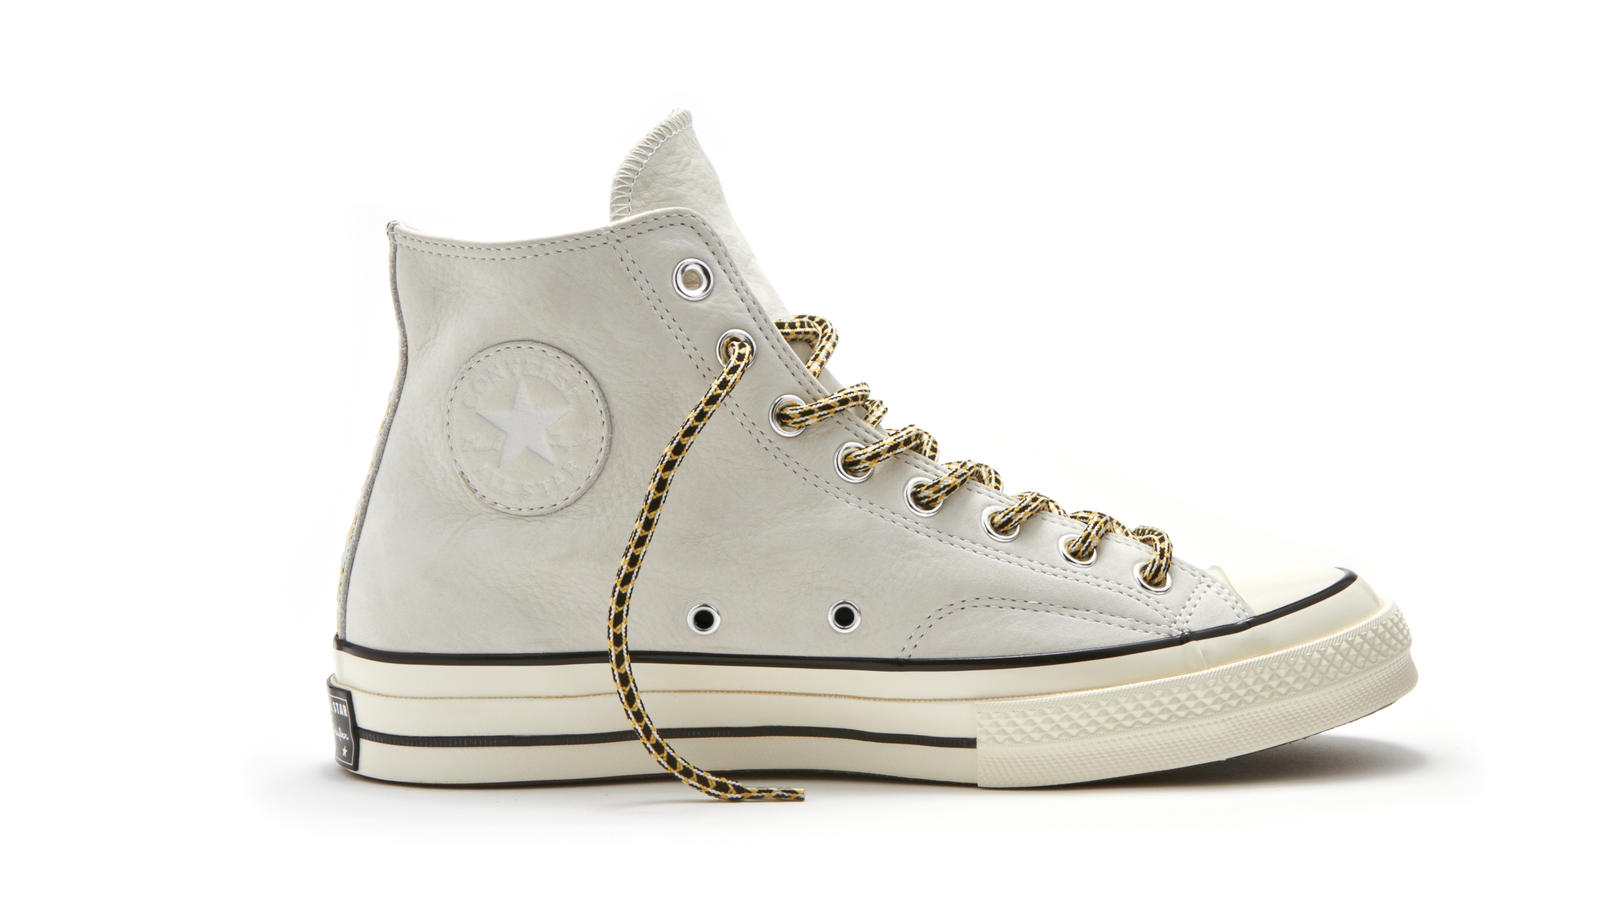 41282d6f45bf NEW MATERIALS AND PASTEL HUES INSPIRE THE NEW CONVERSE COLLECTIONS ...